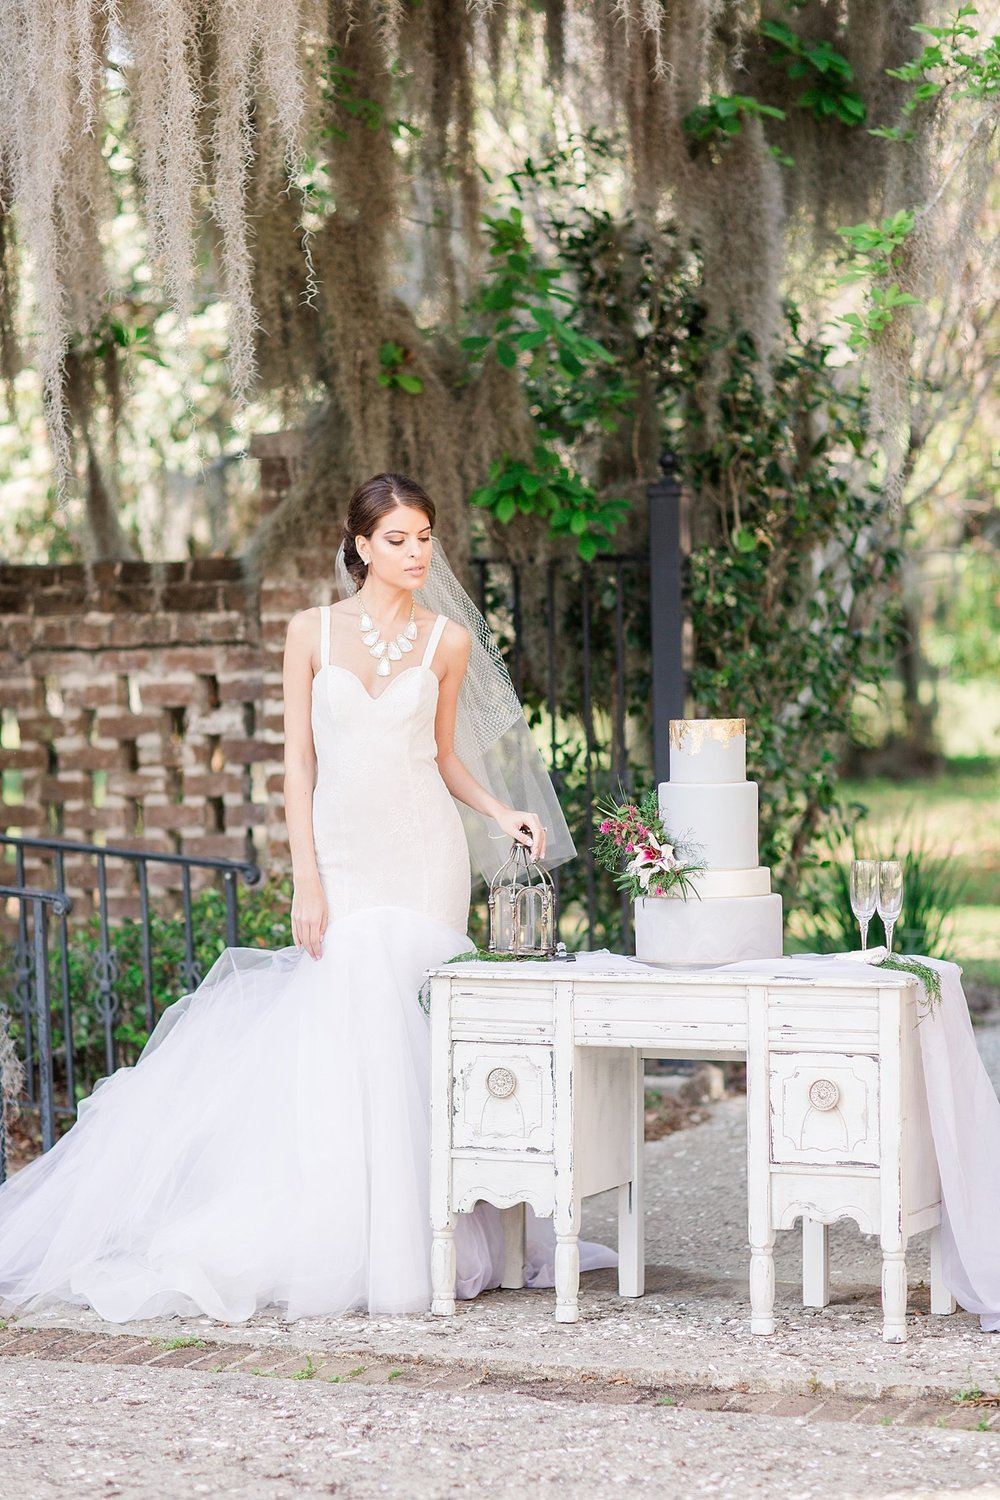 rachel-strickland-photography-katie-may-ivory-and-beau-bridal-boutique-bethesda-academy-wedding-whitfield-chapel-wedding-savannah-bridal-boutique-savannah-weddings-savannah-wedding-savannah-wedding-planner-savannah-bridal-gowns-savannah-bride-21.jpg